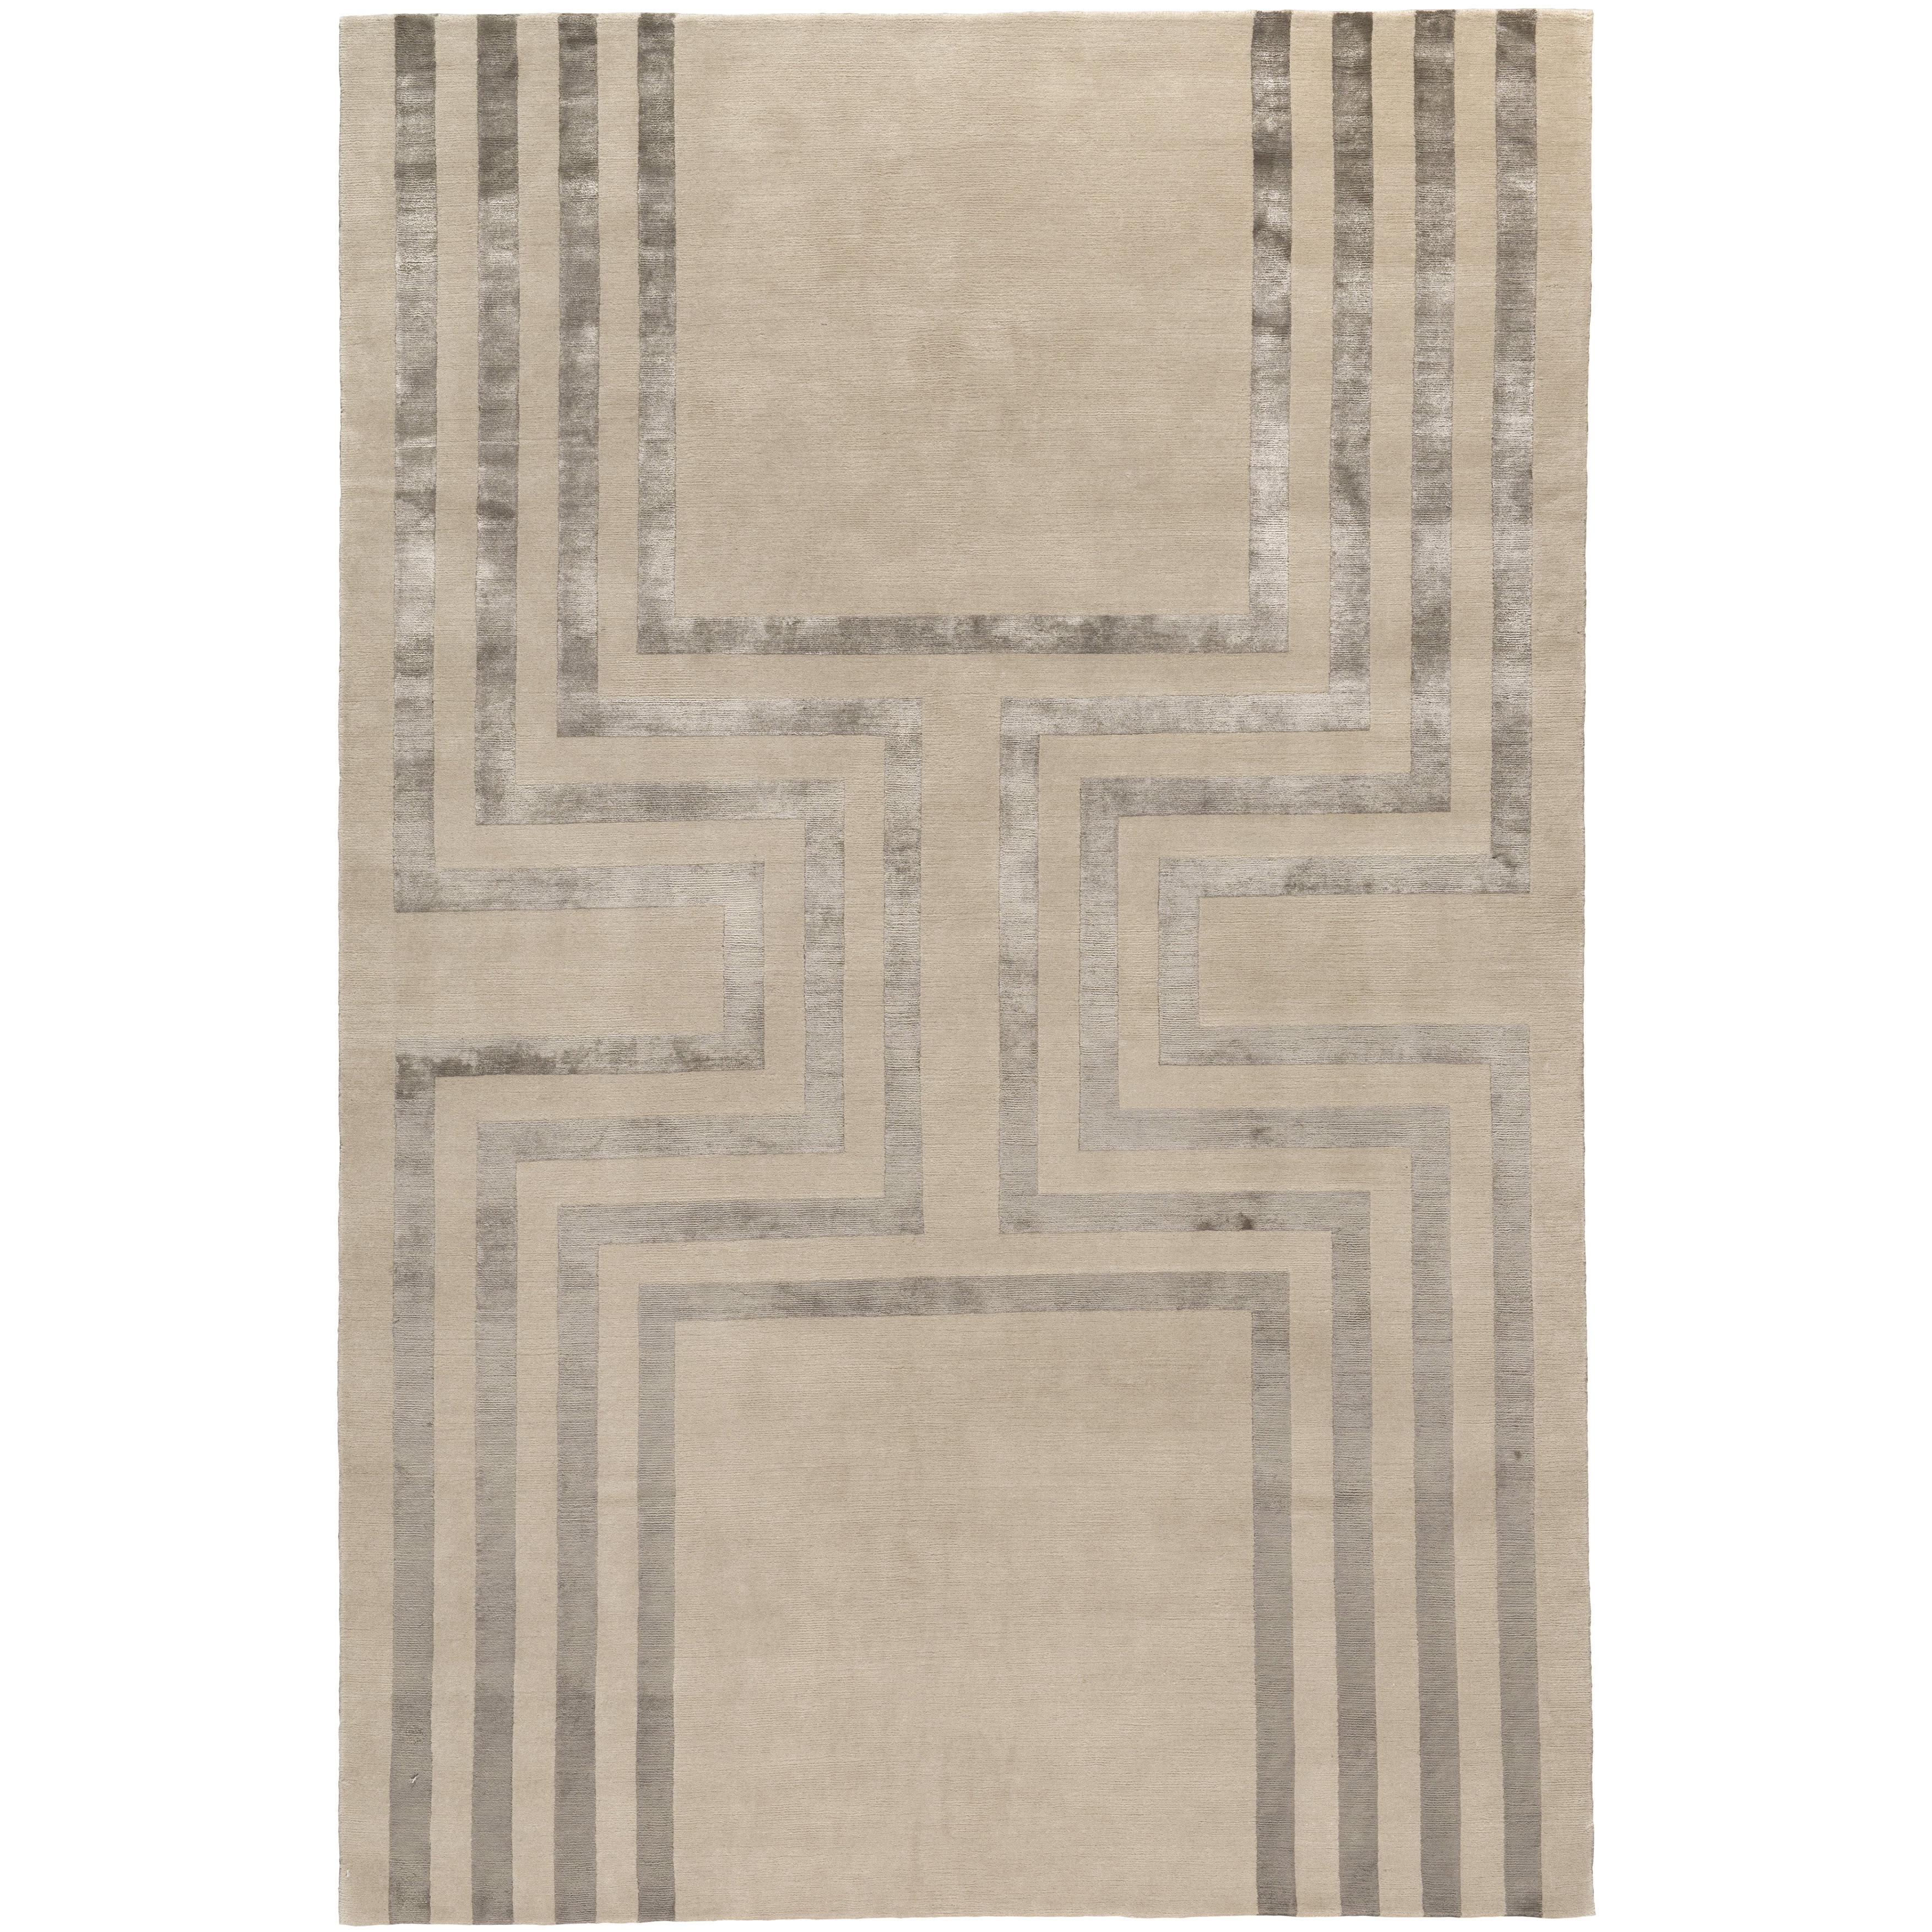 Empire Hand-Knotted 10x8 Rug in Wool and Silk by Tim Gosling